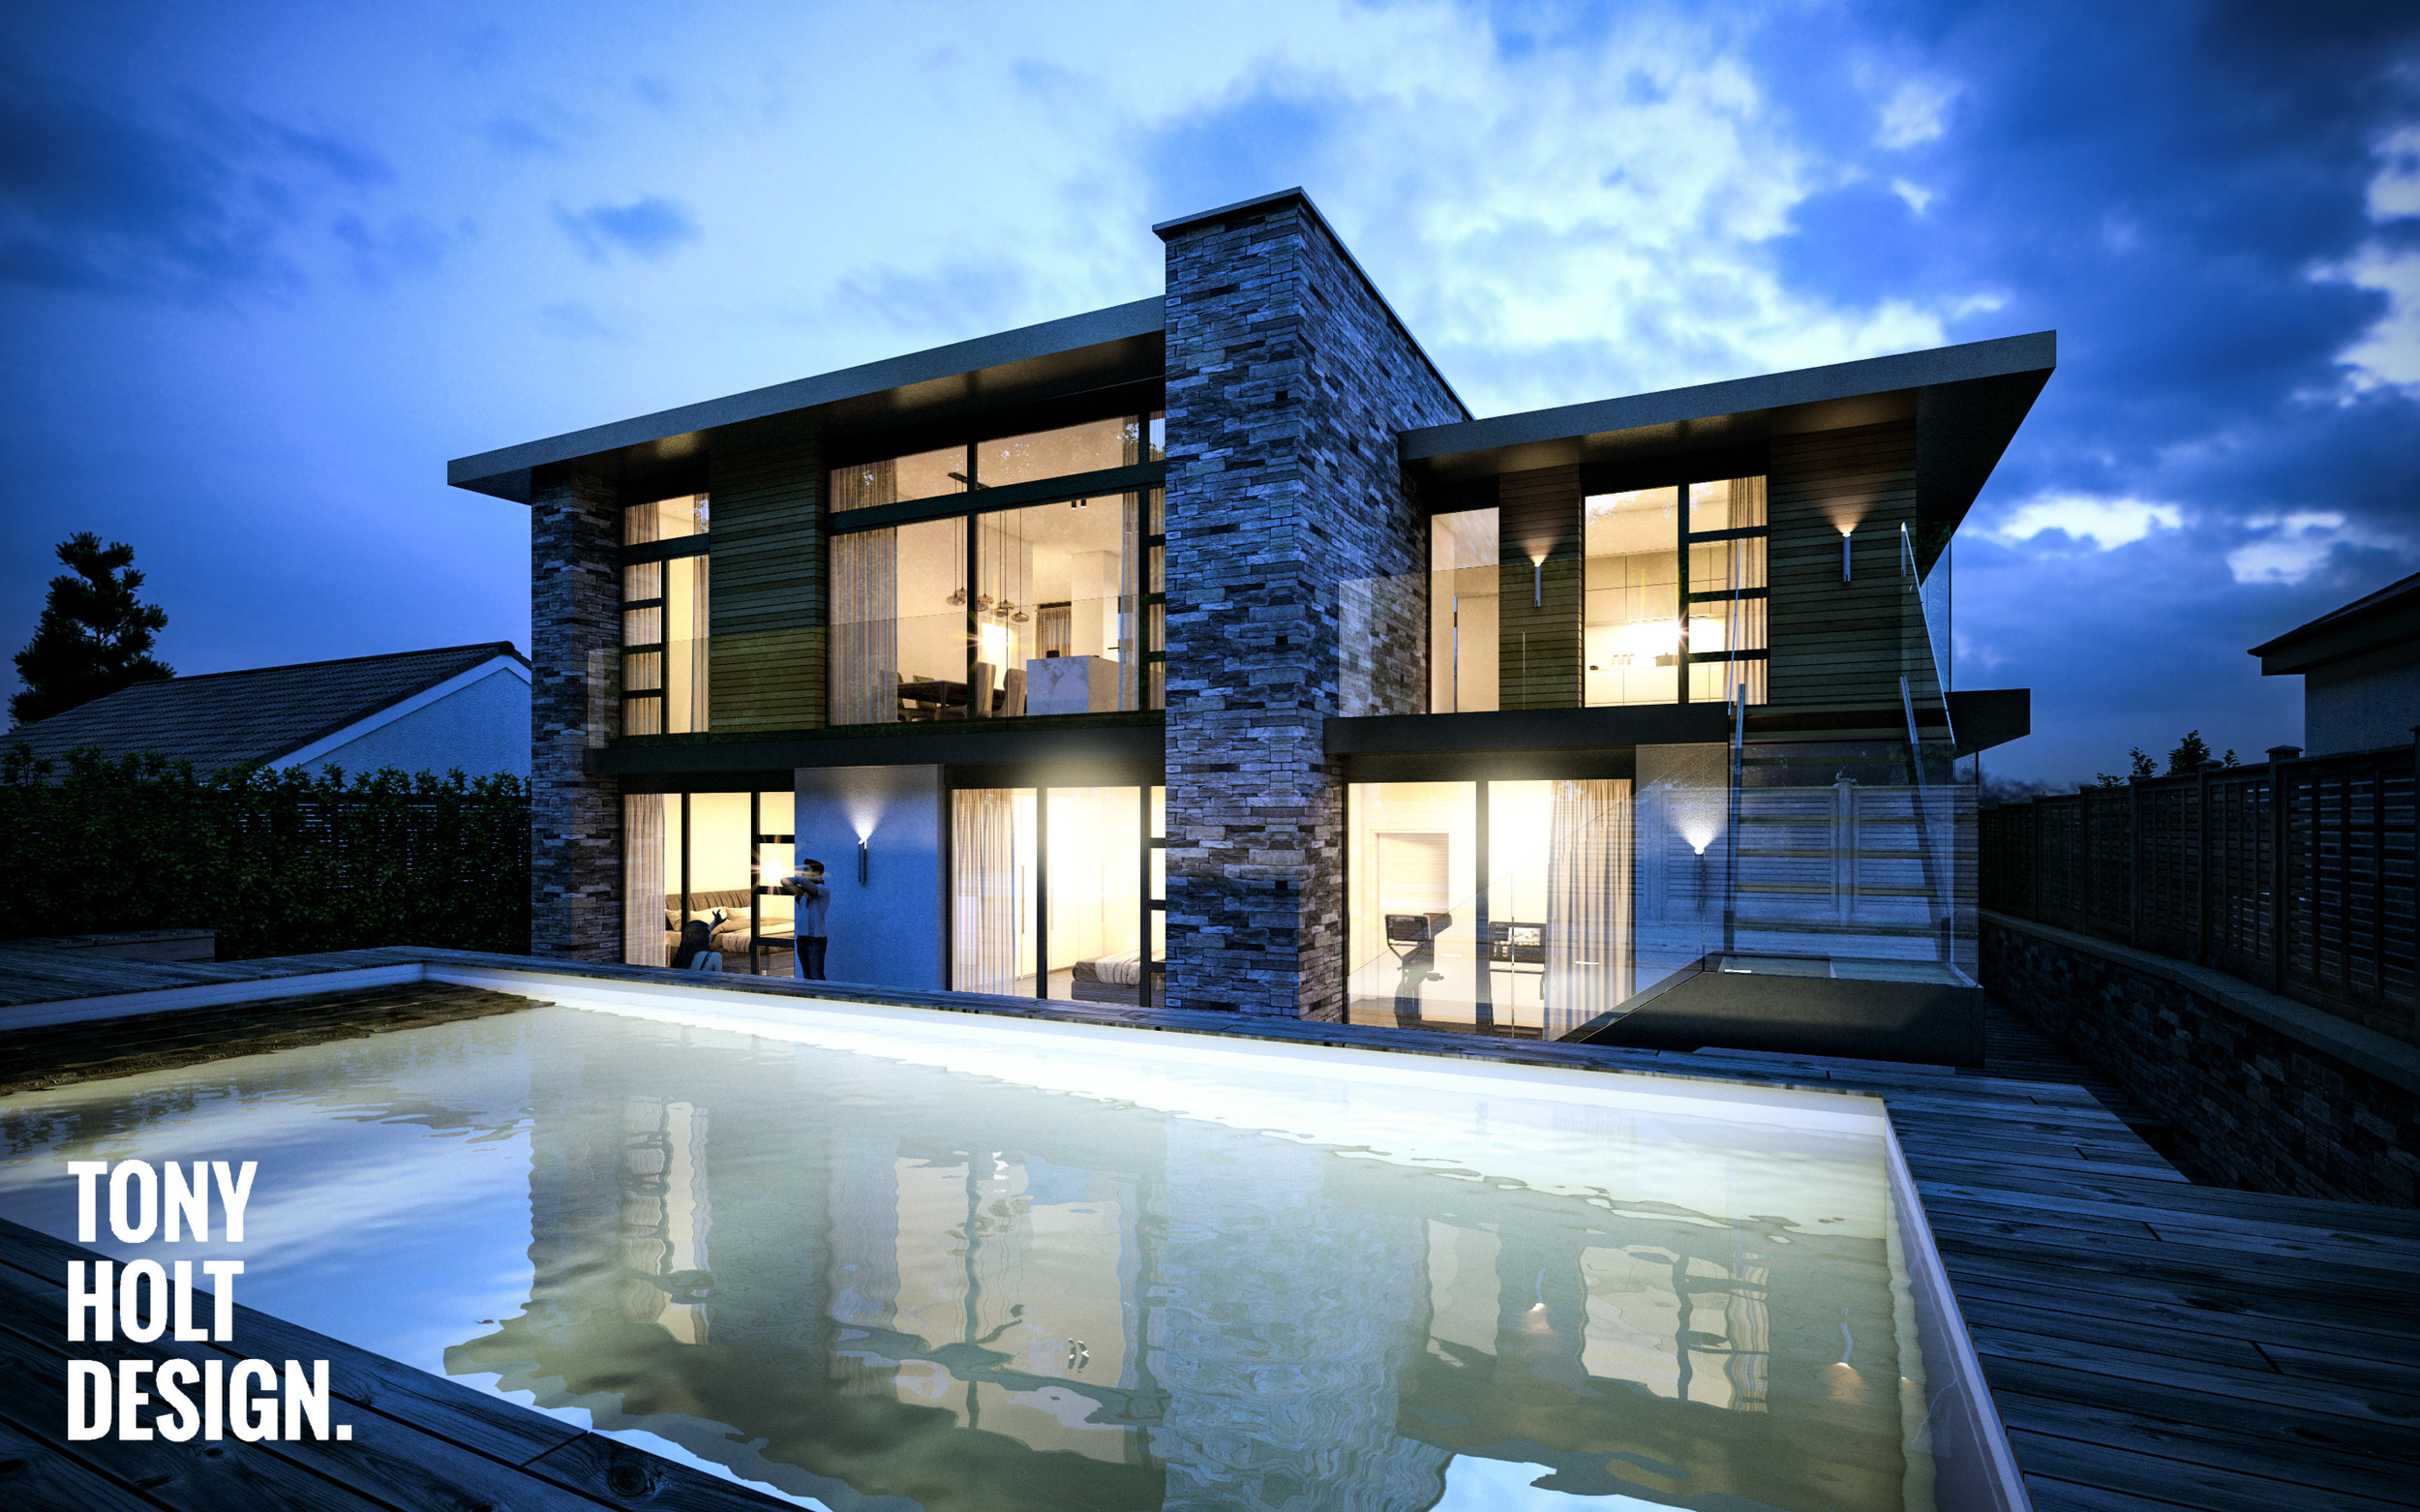 Tony Holt Design_Self Build_New Build_Little Sands 02_CGI.jpg